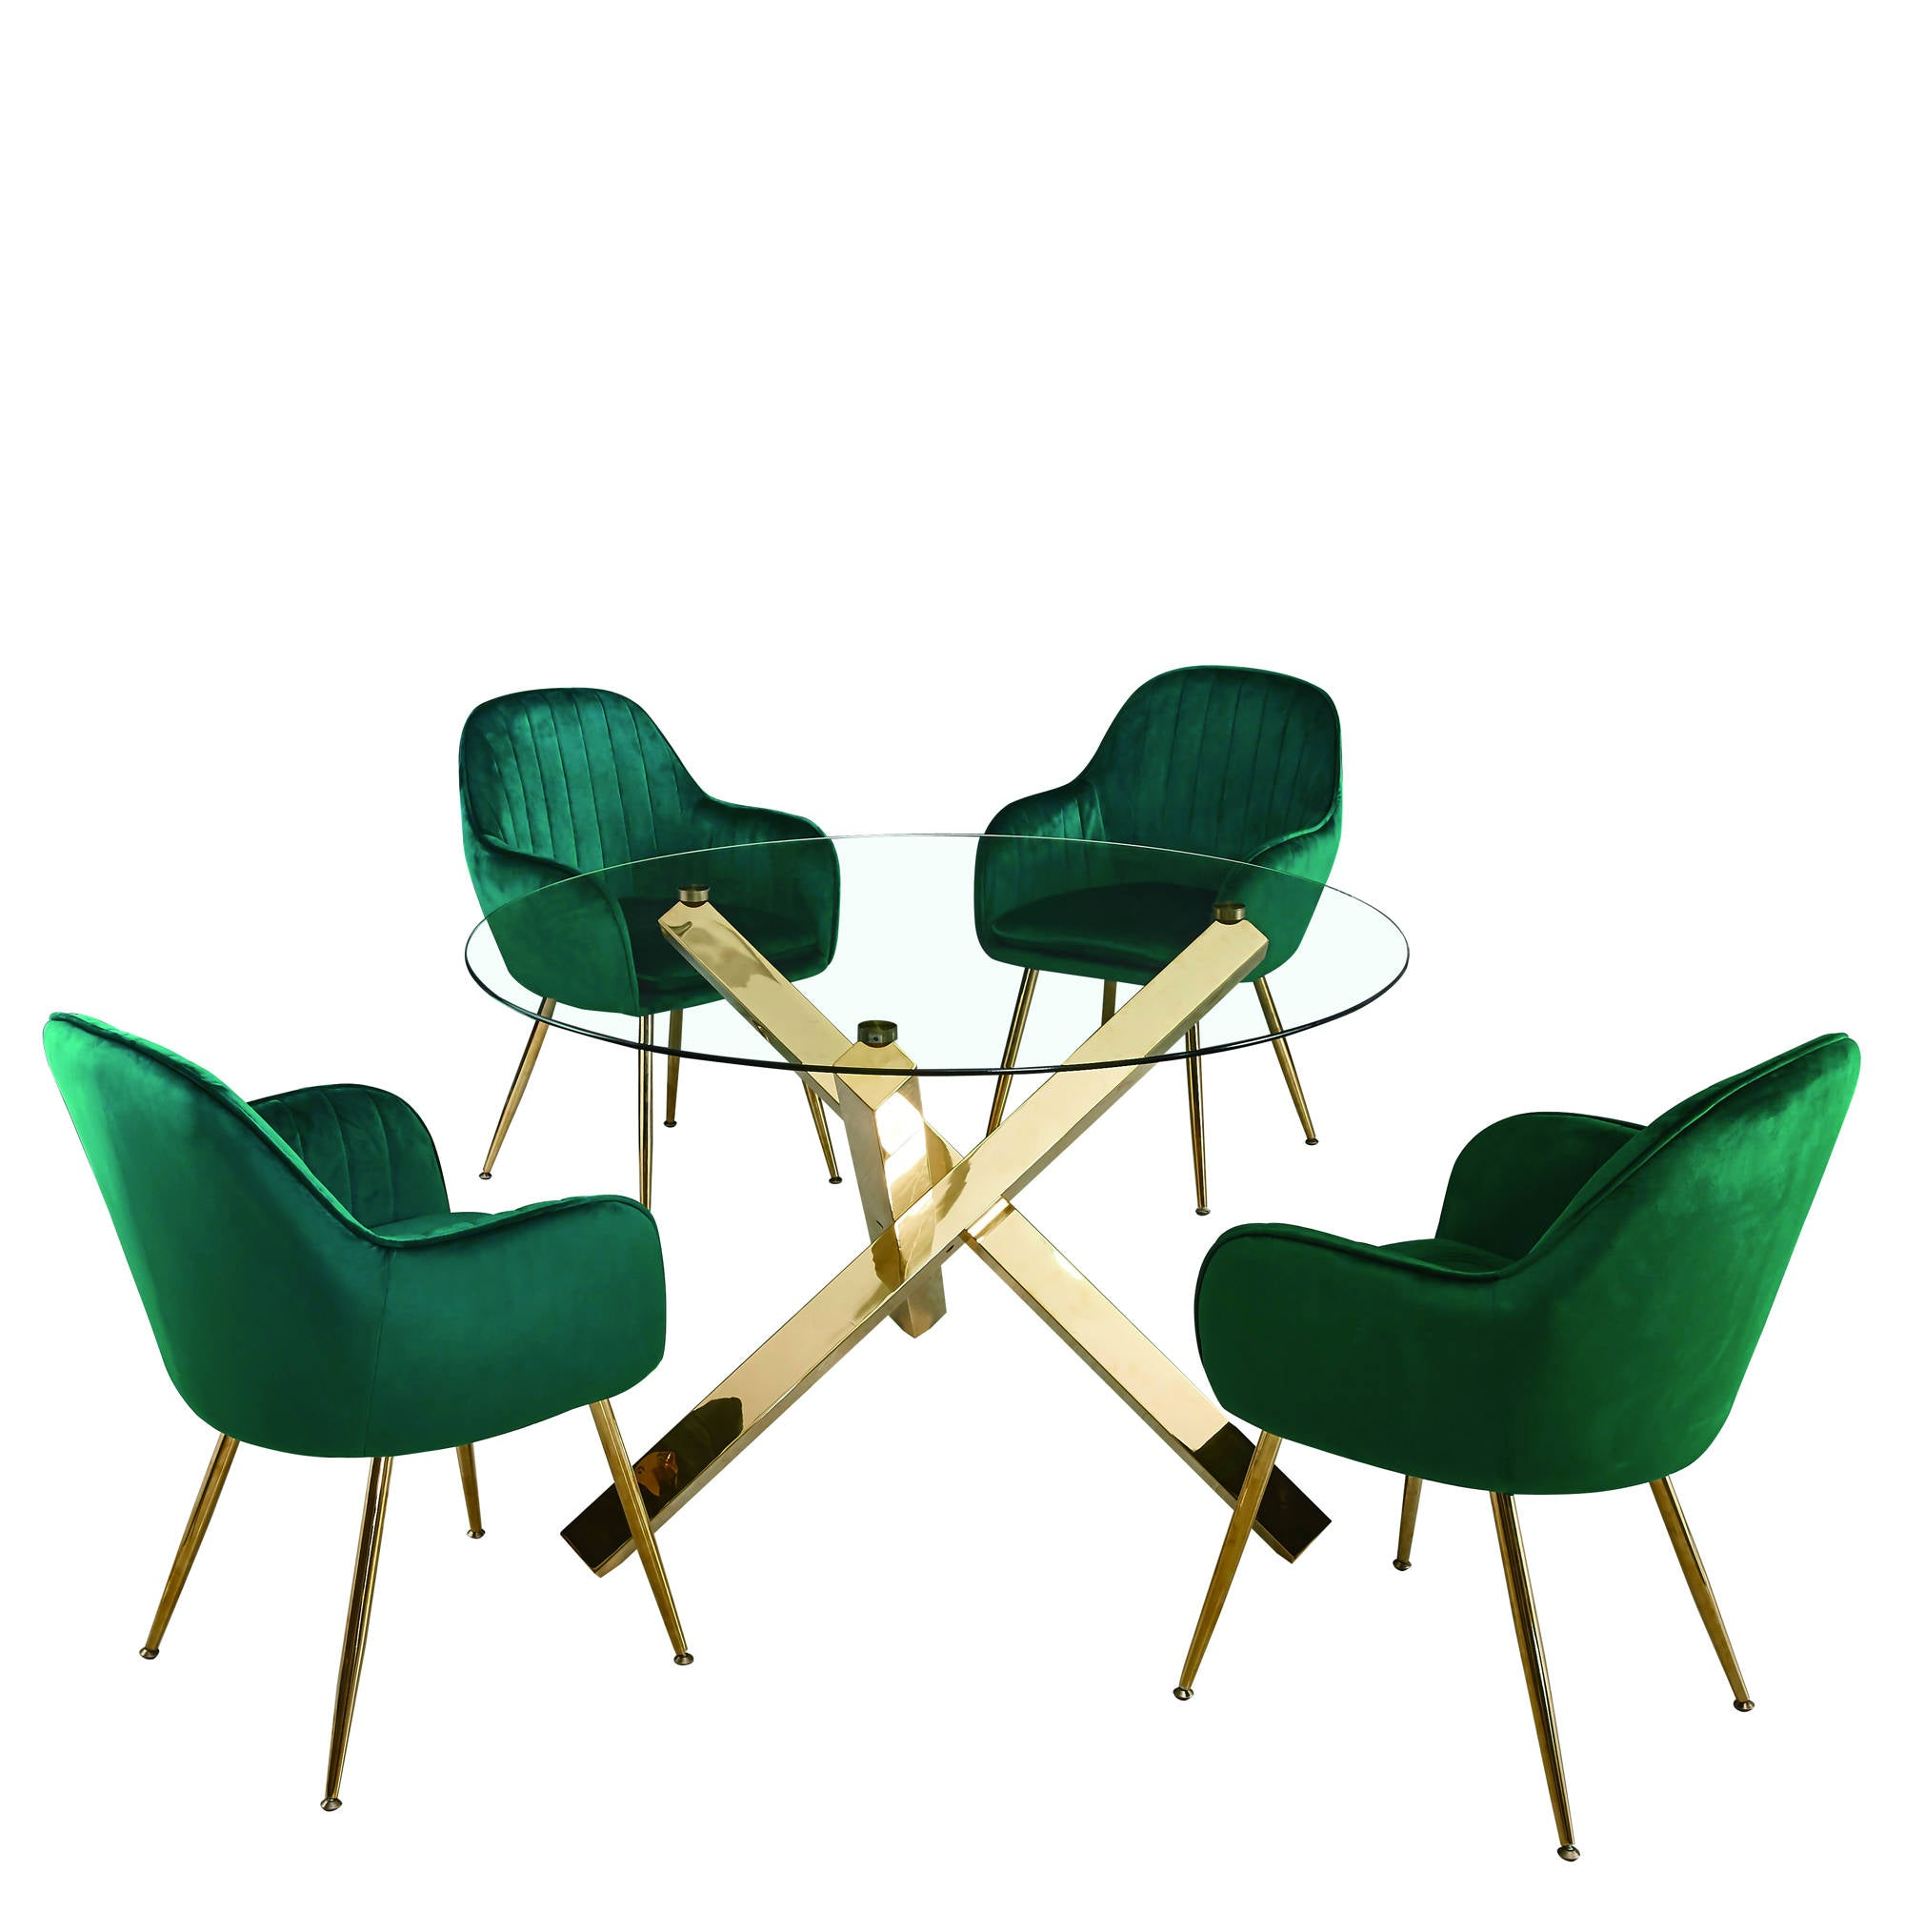 Lares Chairs in Forest Green